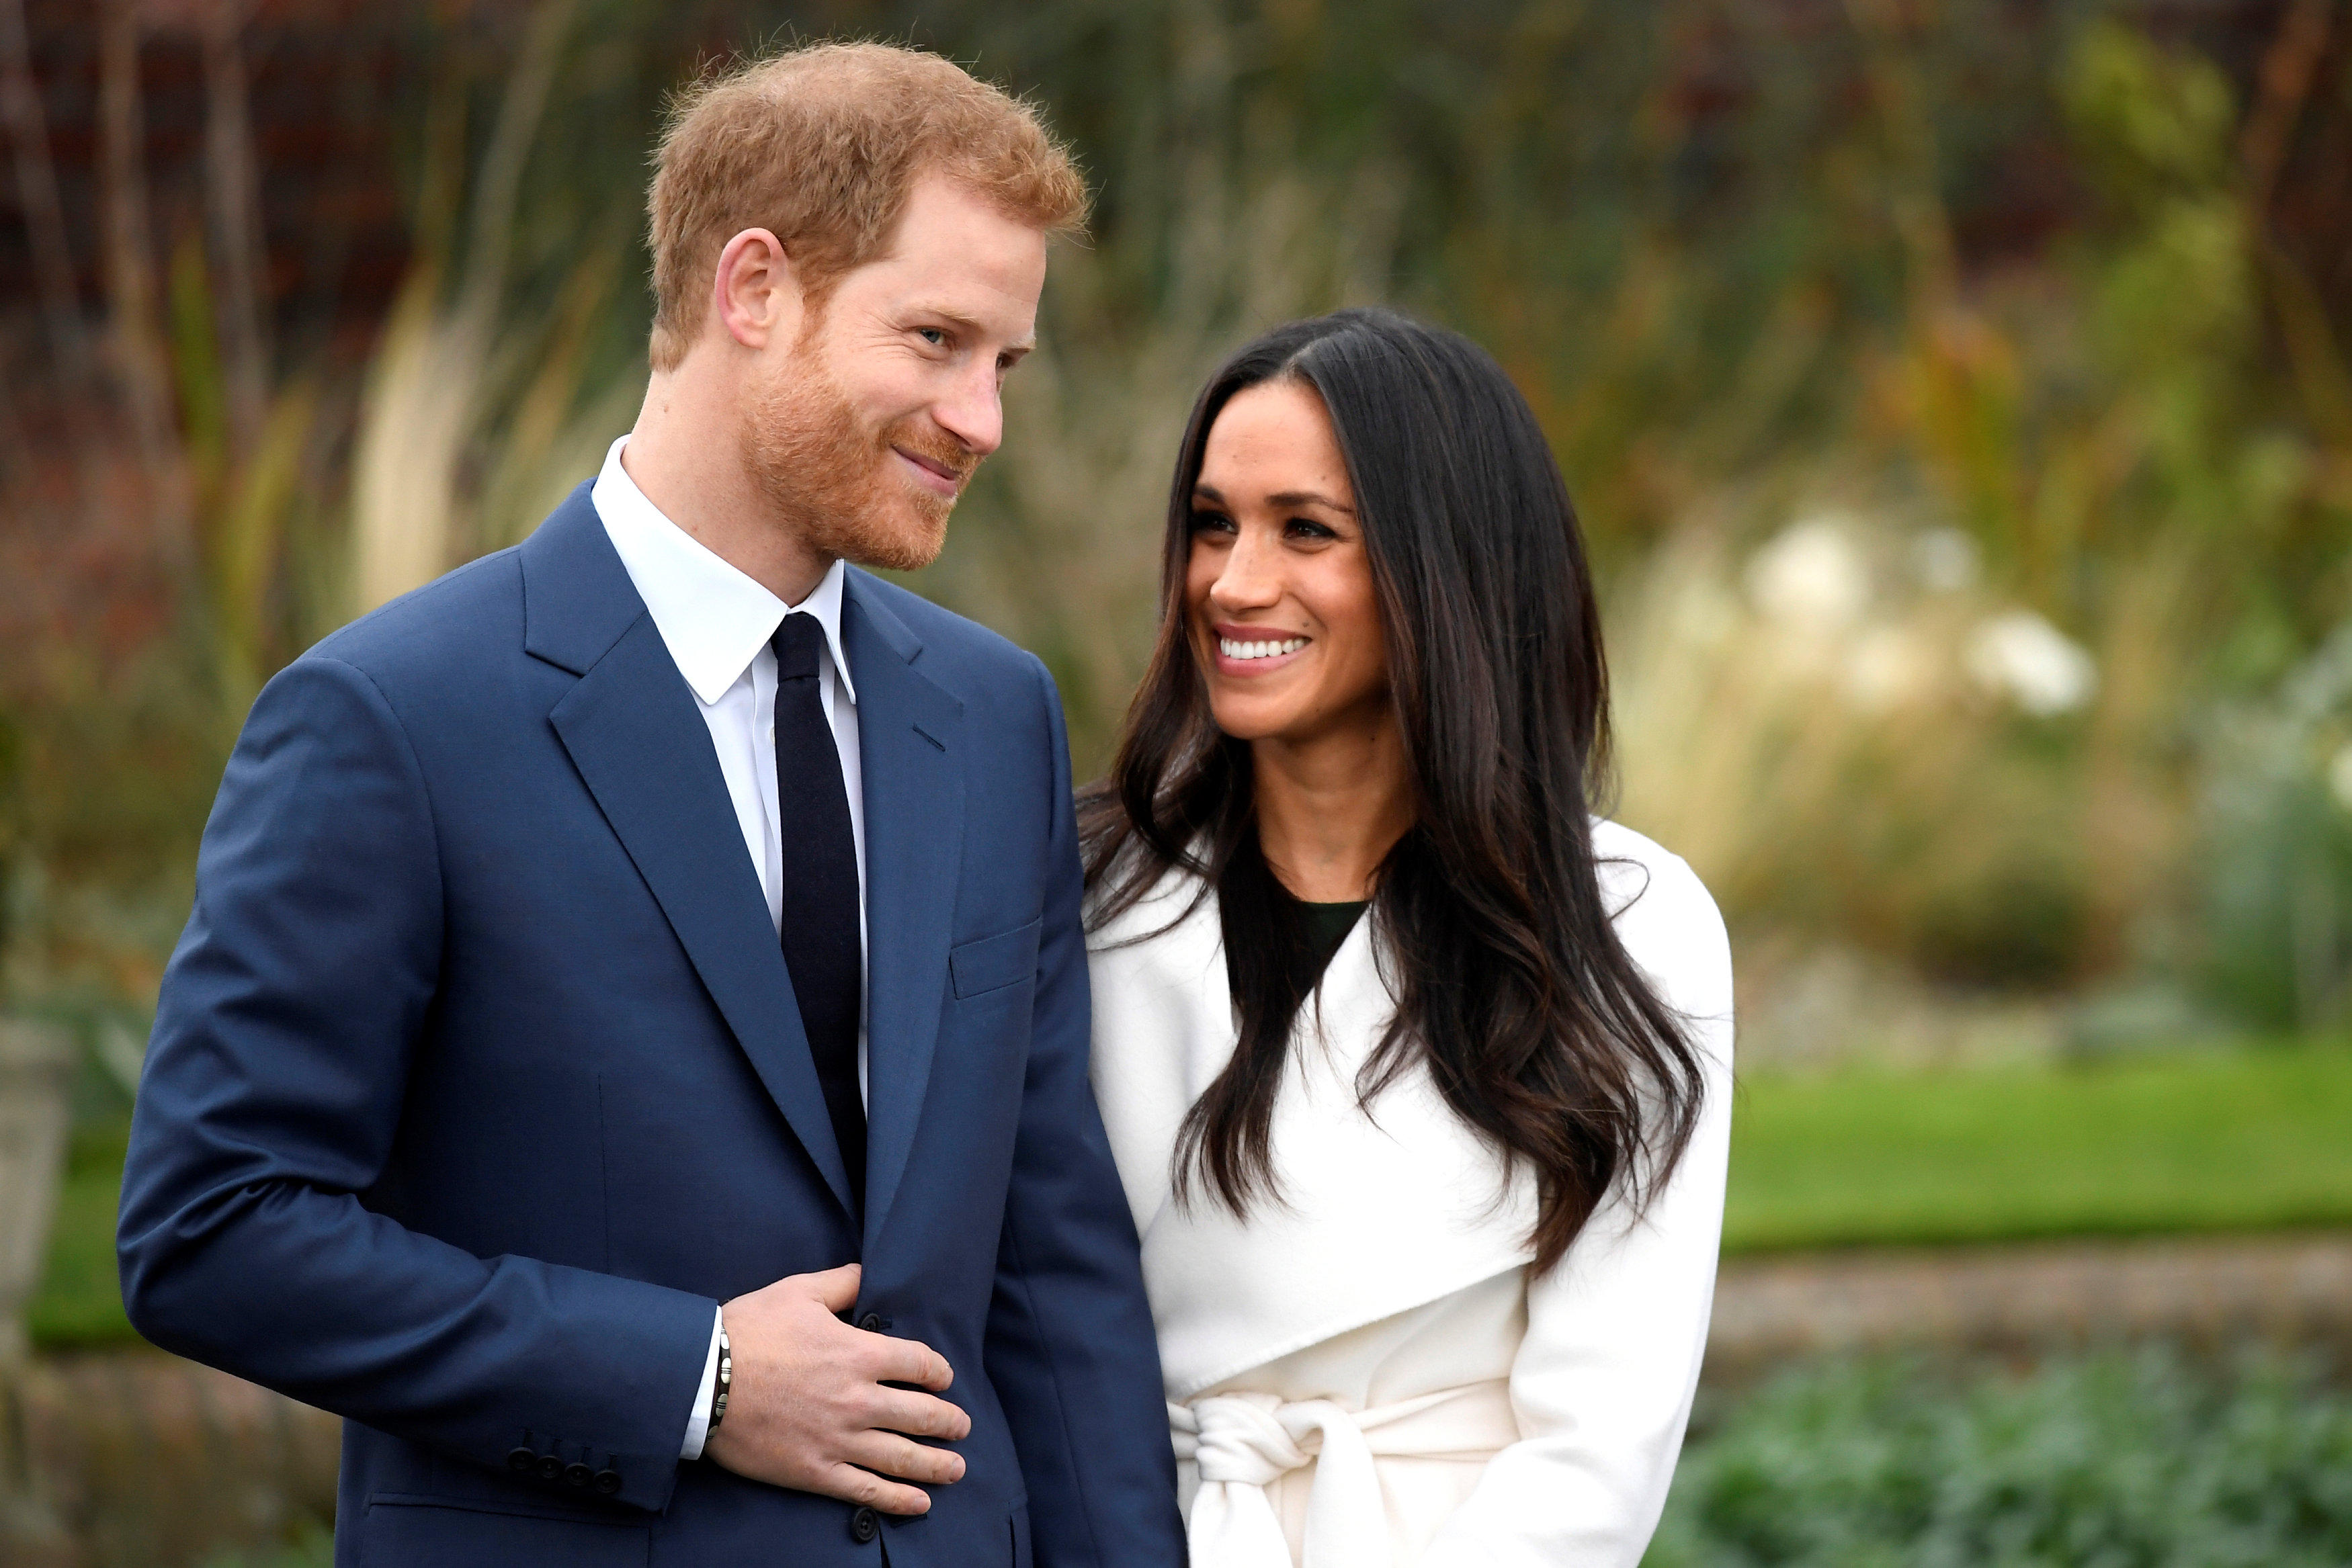 meghan markle, <b> Meghan Markle to lend voice for unspecified Disney project</b>